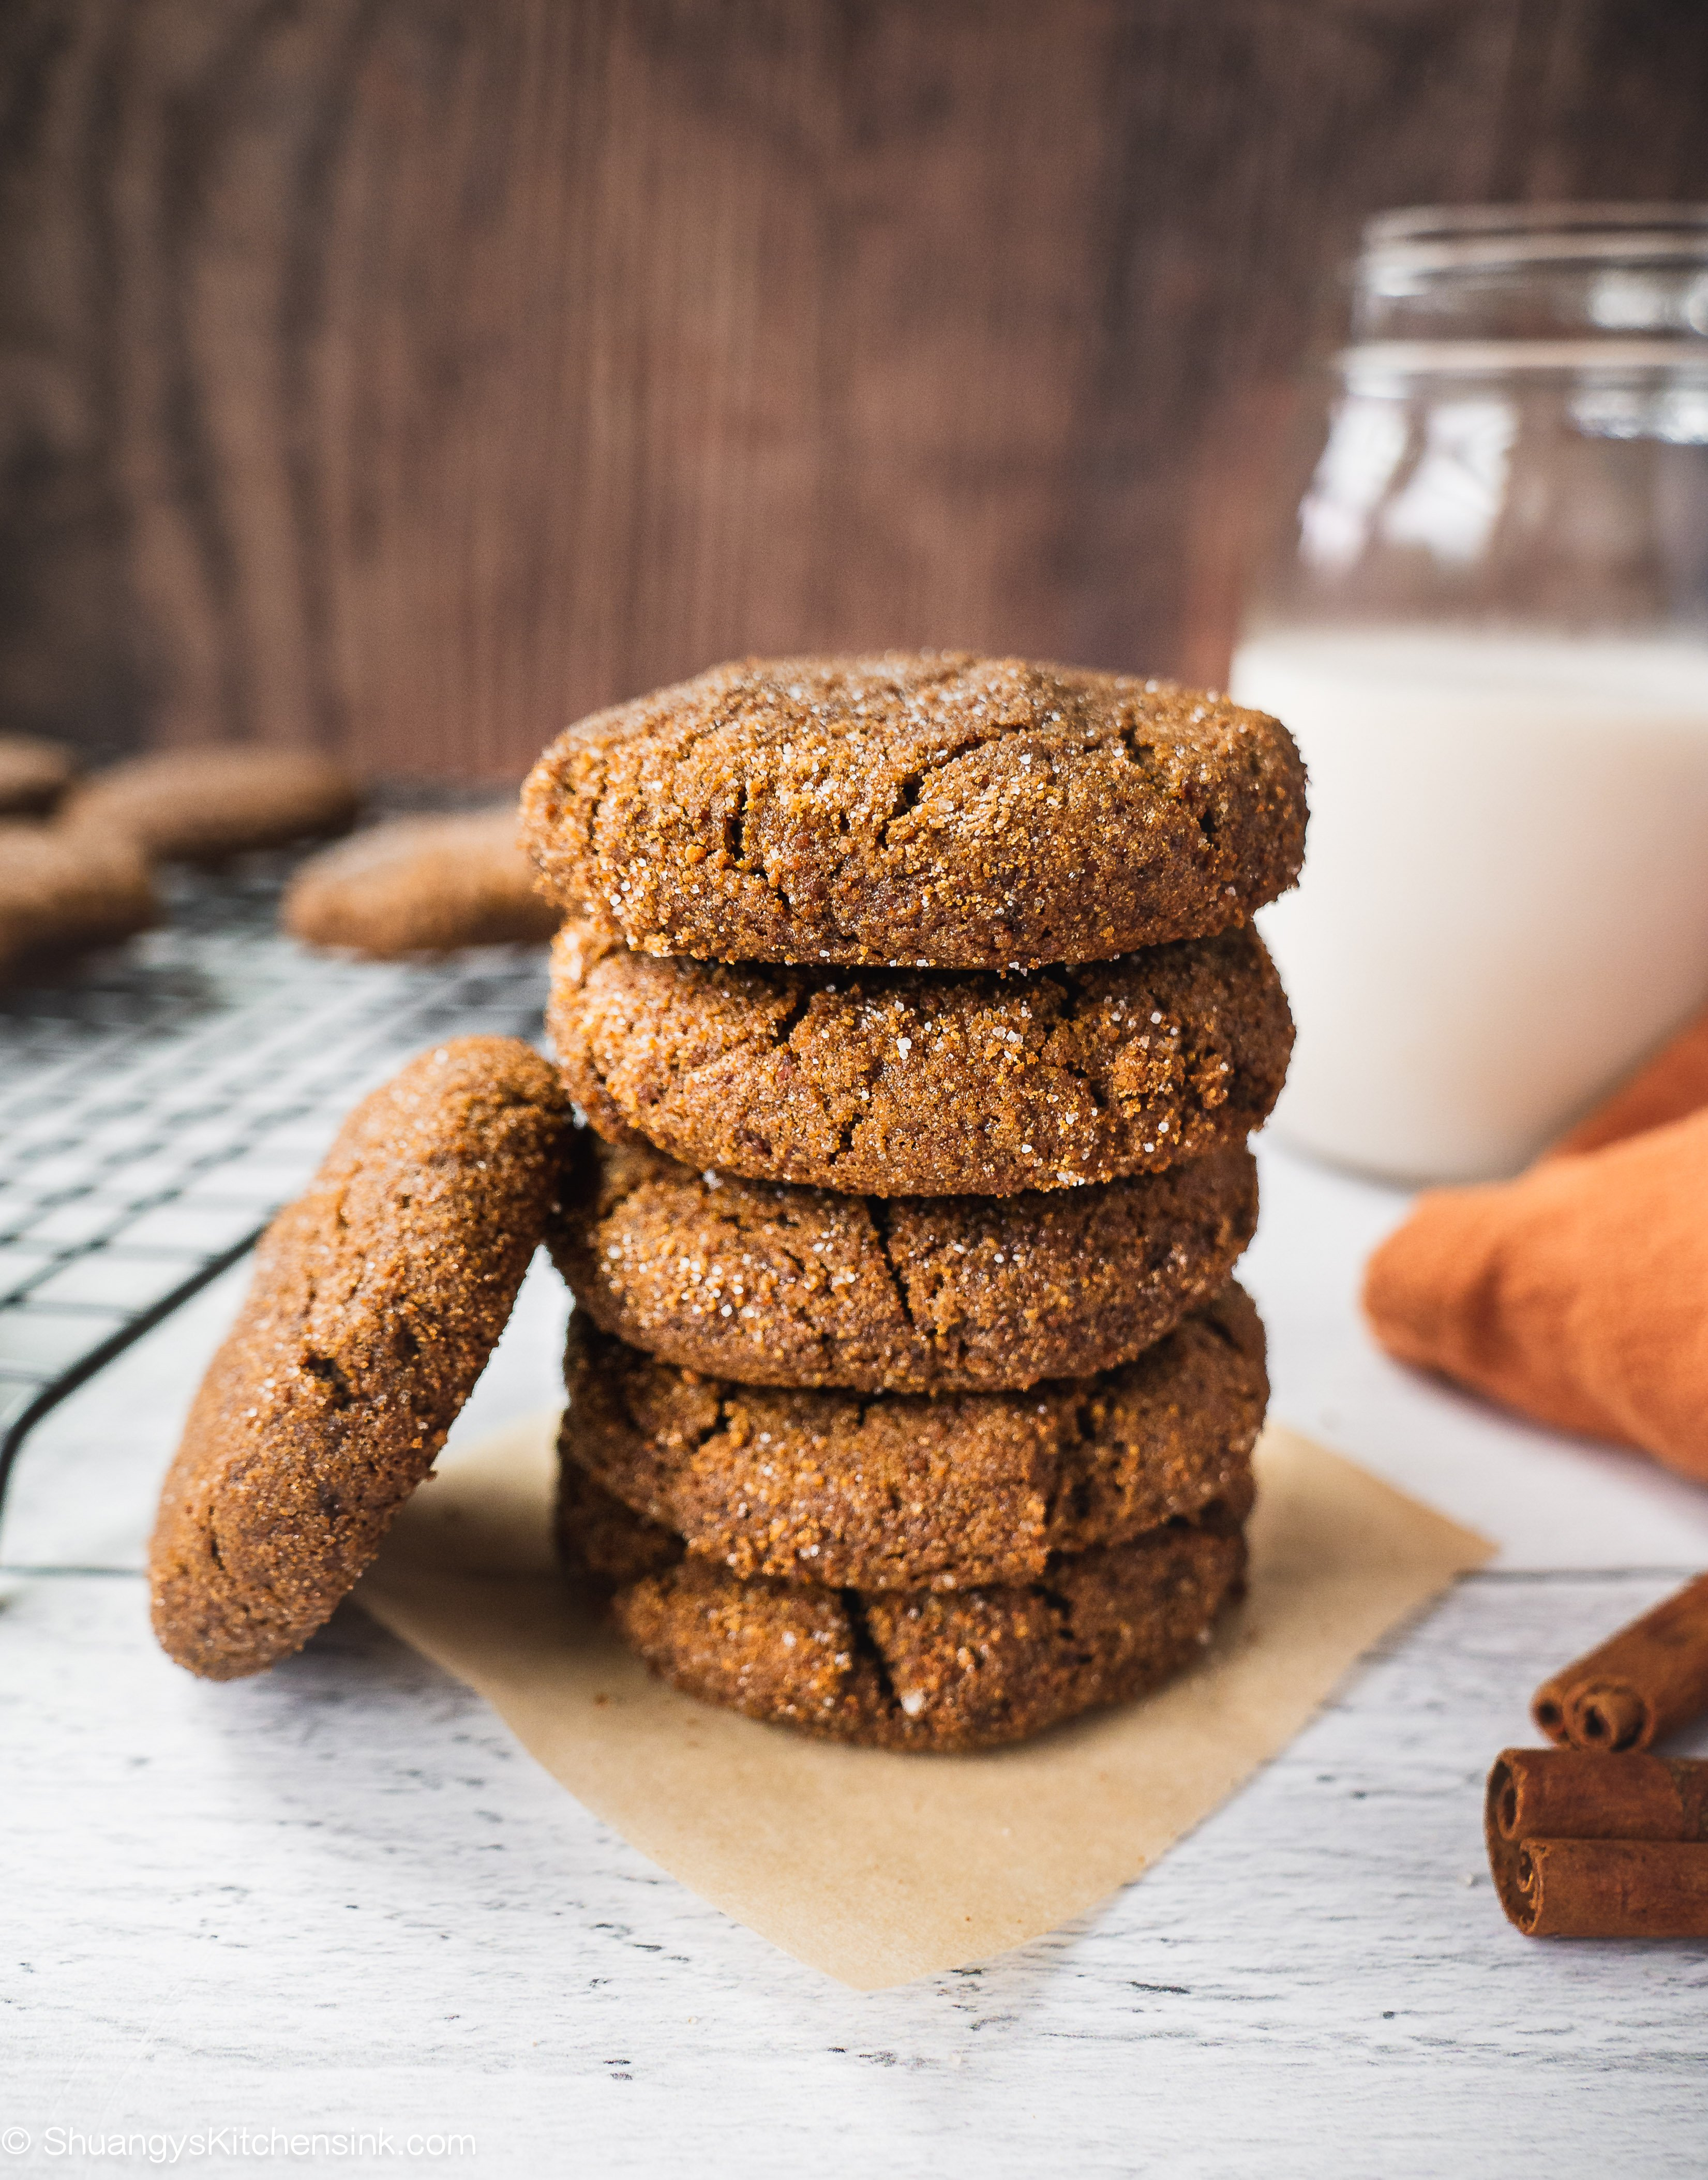 A stack of paleo ginger bread cookies with a glass of milk and cinnamon sticks in the background. There is a cookie leaning on the cookie stack.